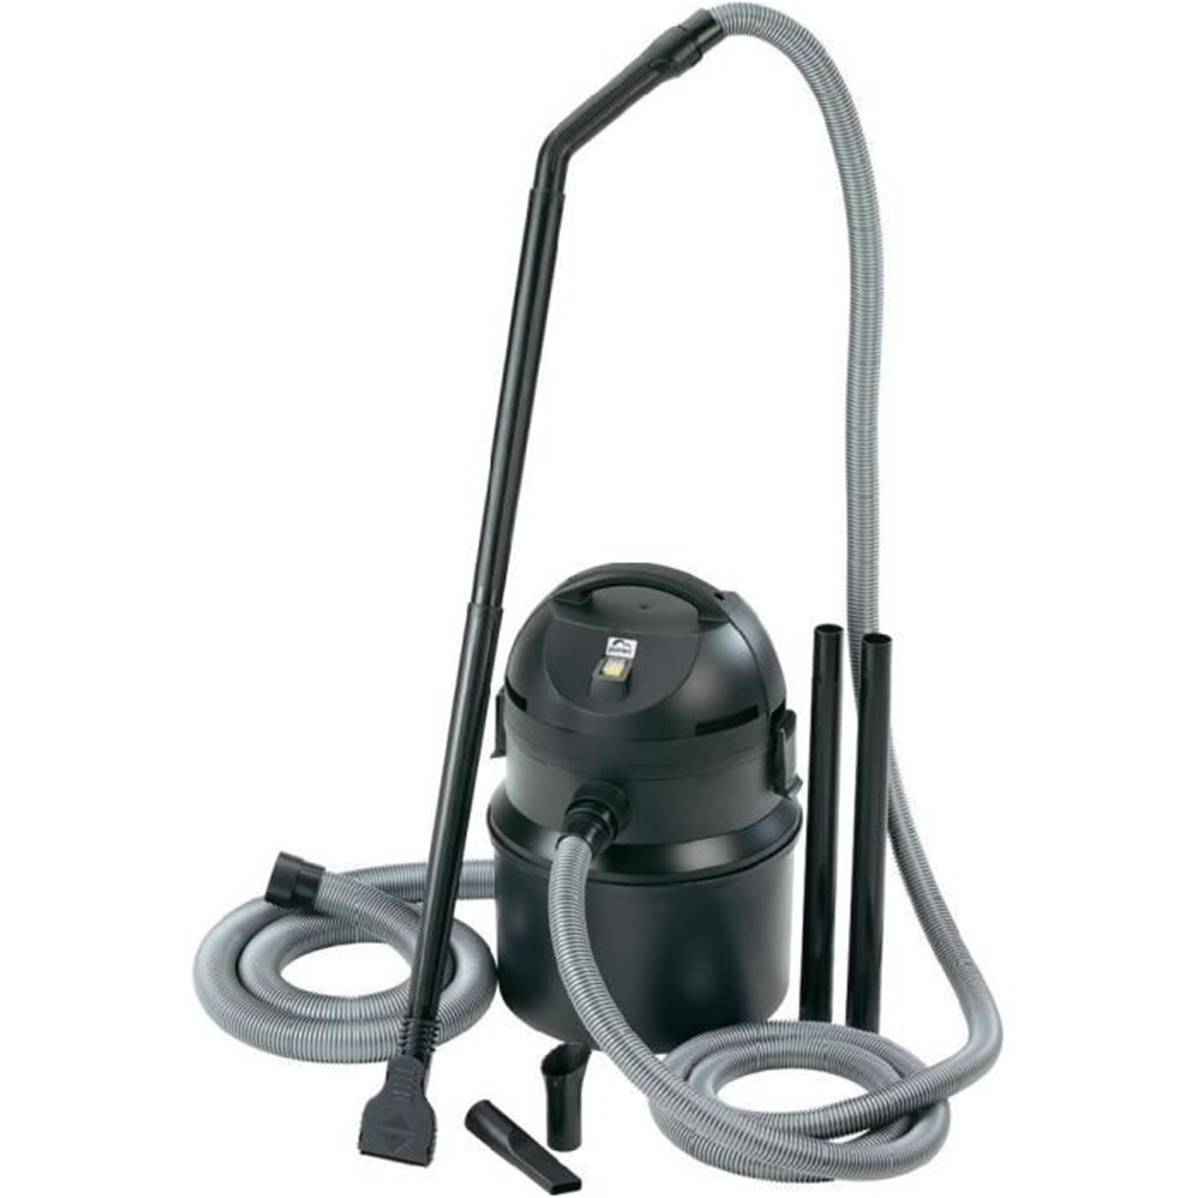 PONTEC - PondoMatic aspirateur de bassin